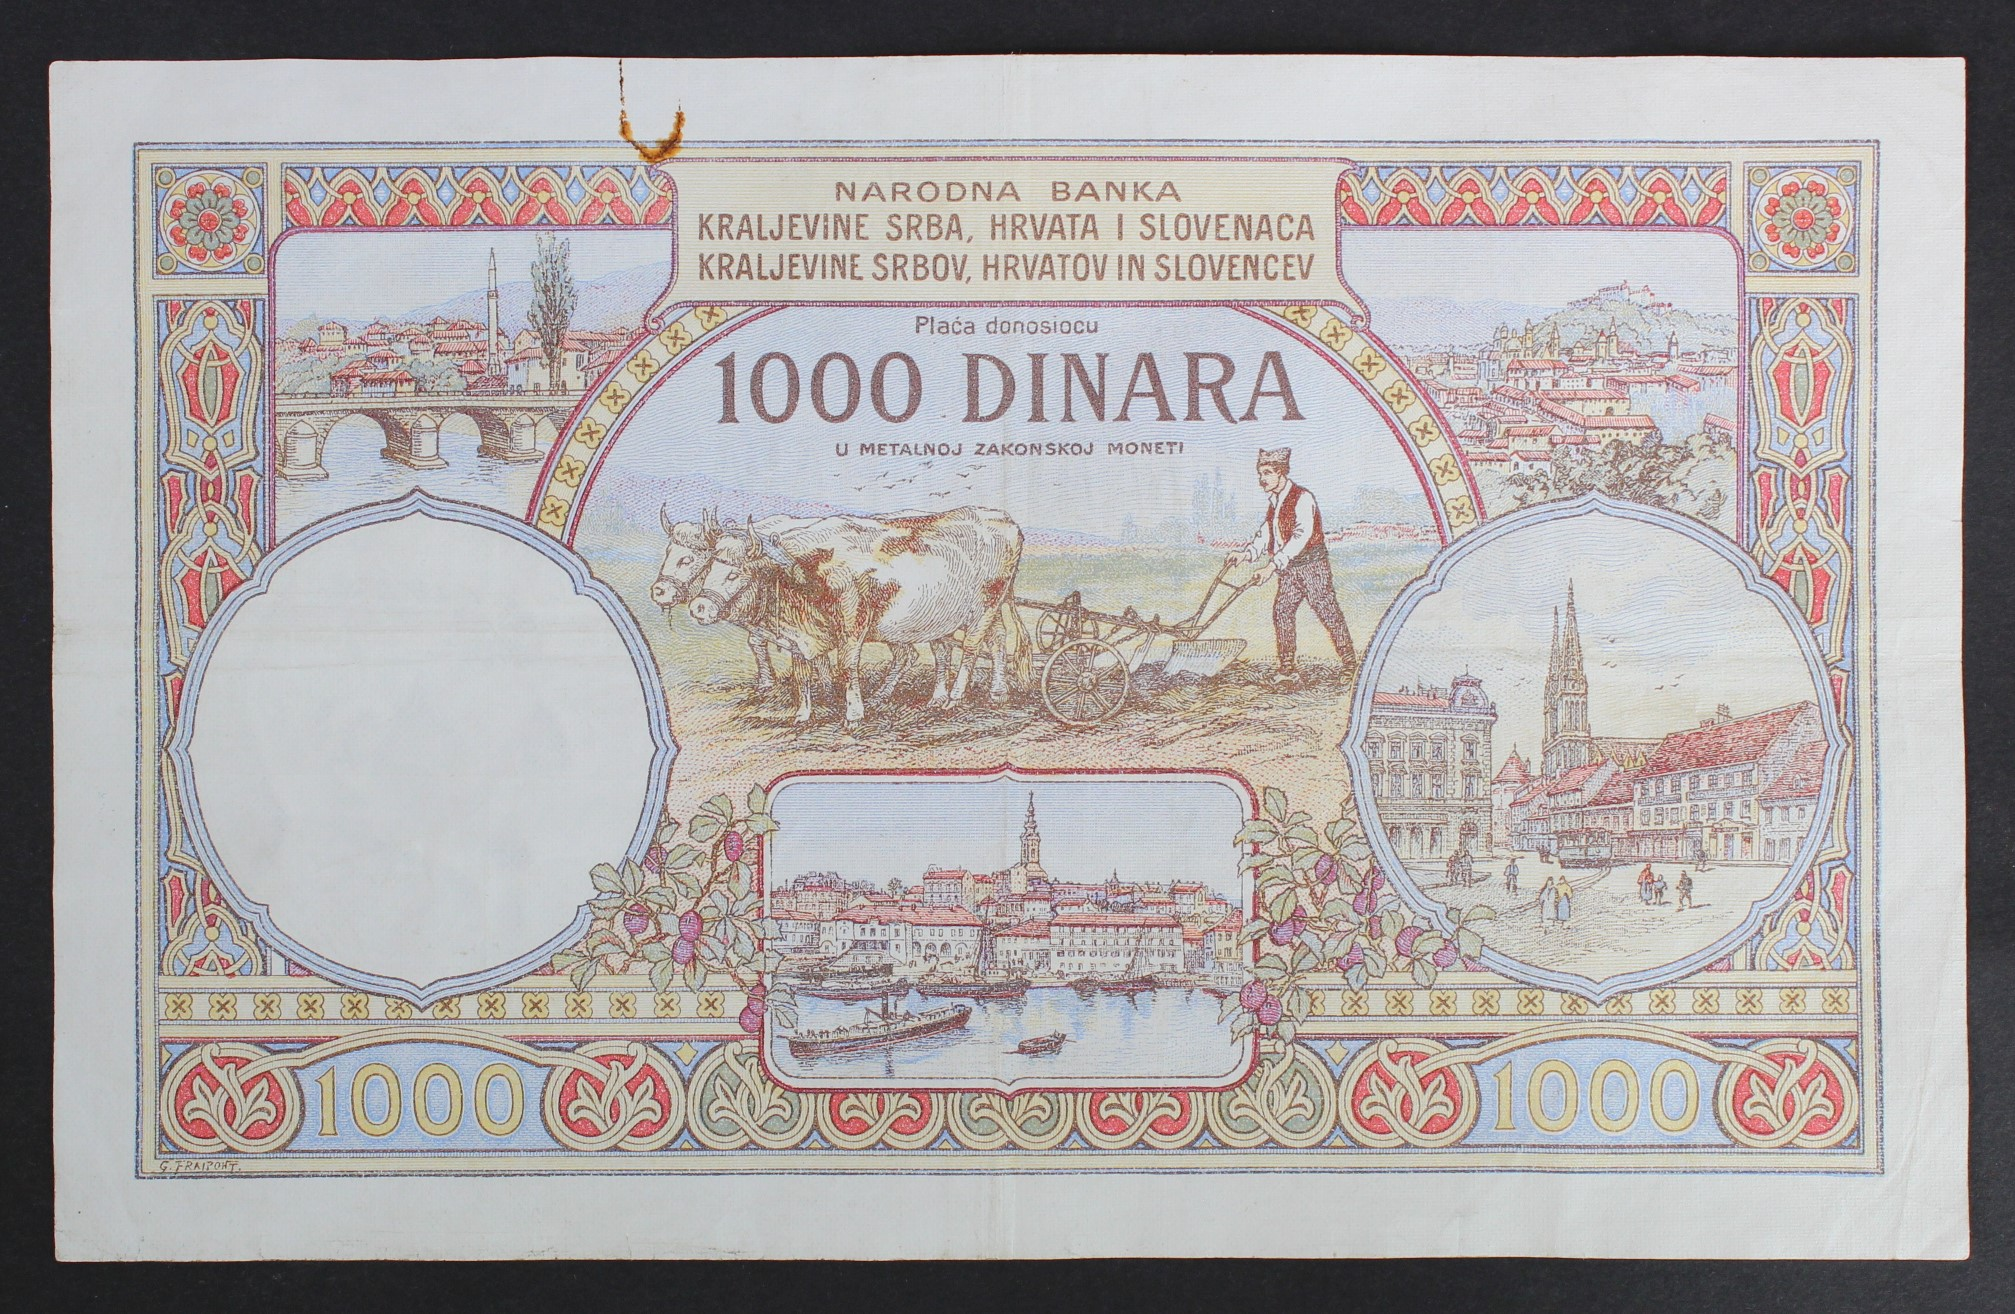 Yugoslavia 1000 Dinara dated 30th November 1920, very rare 1st issue WITHOUT King Karageorge - Image 2 of 2